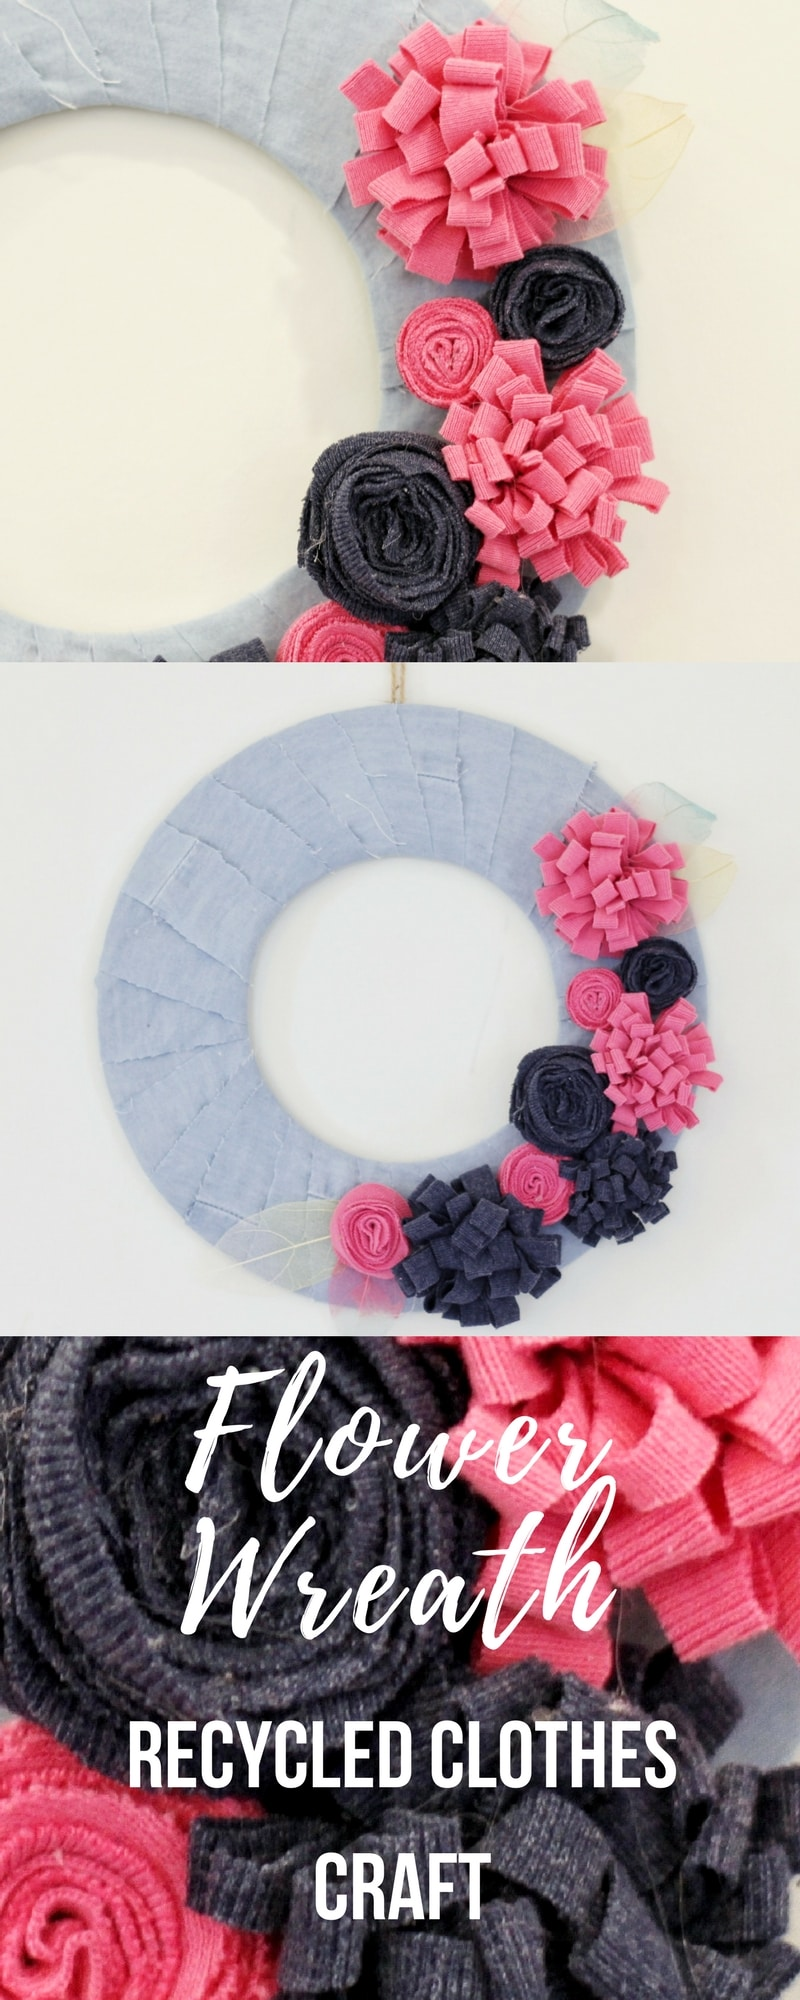 Flower wreath using recycled children's clothes.